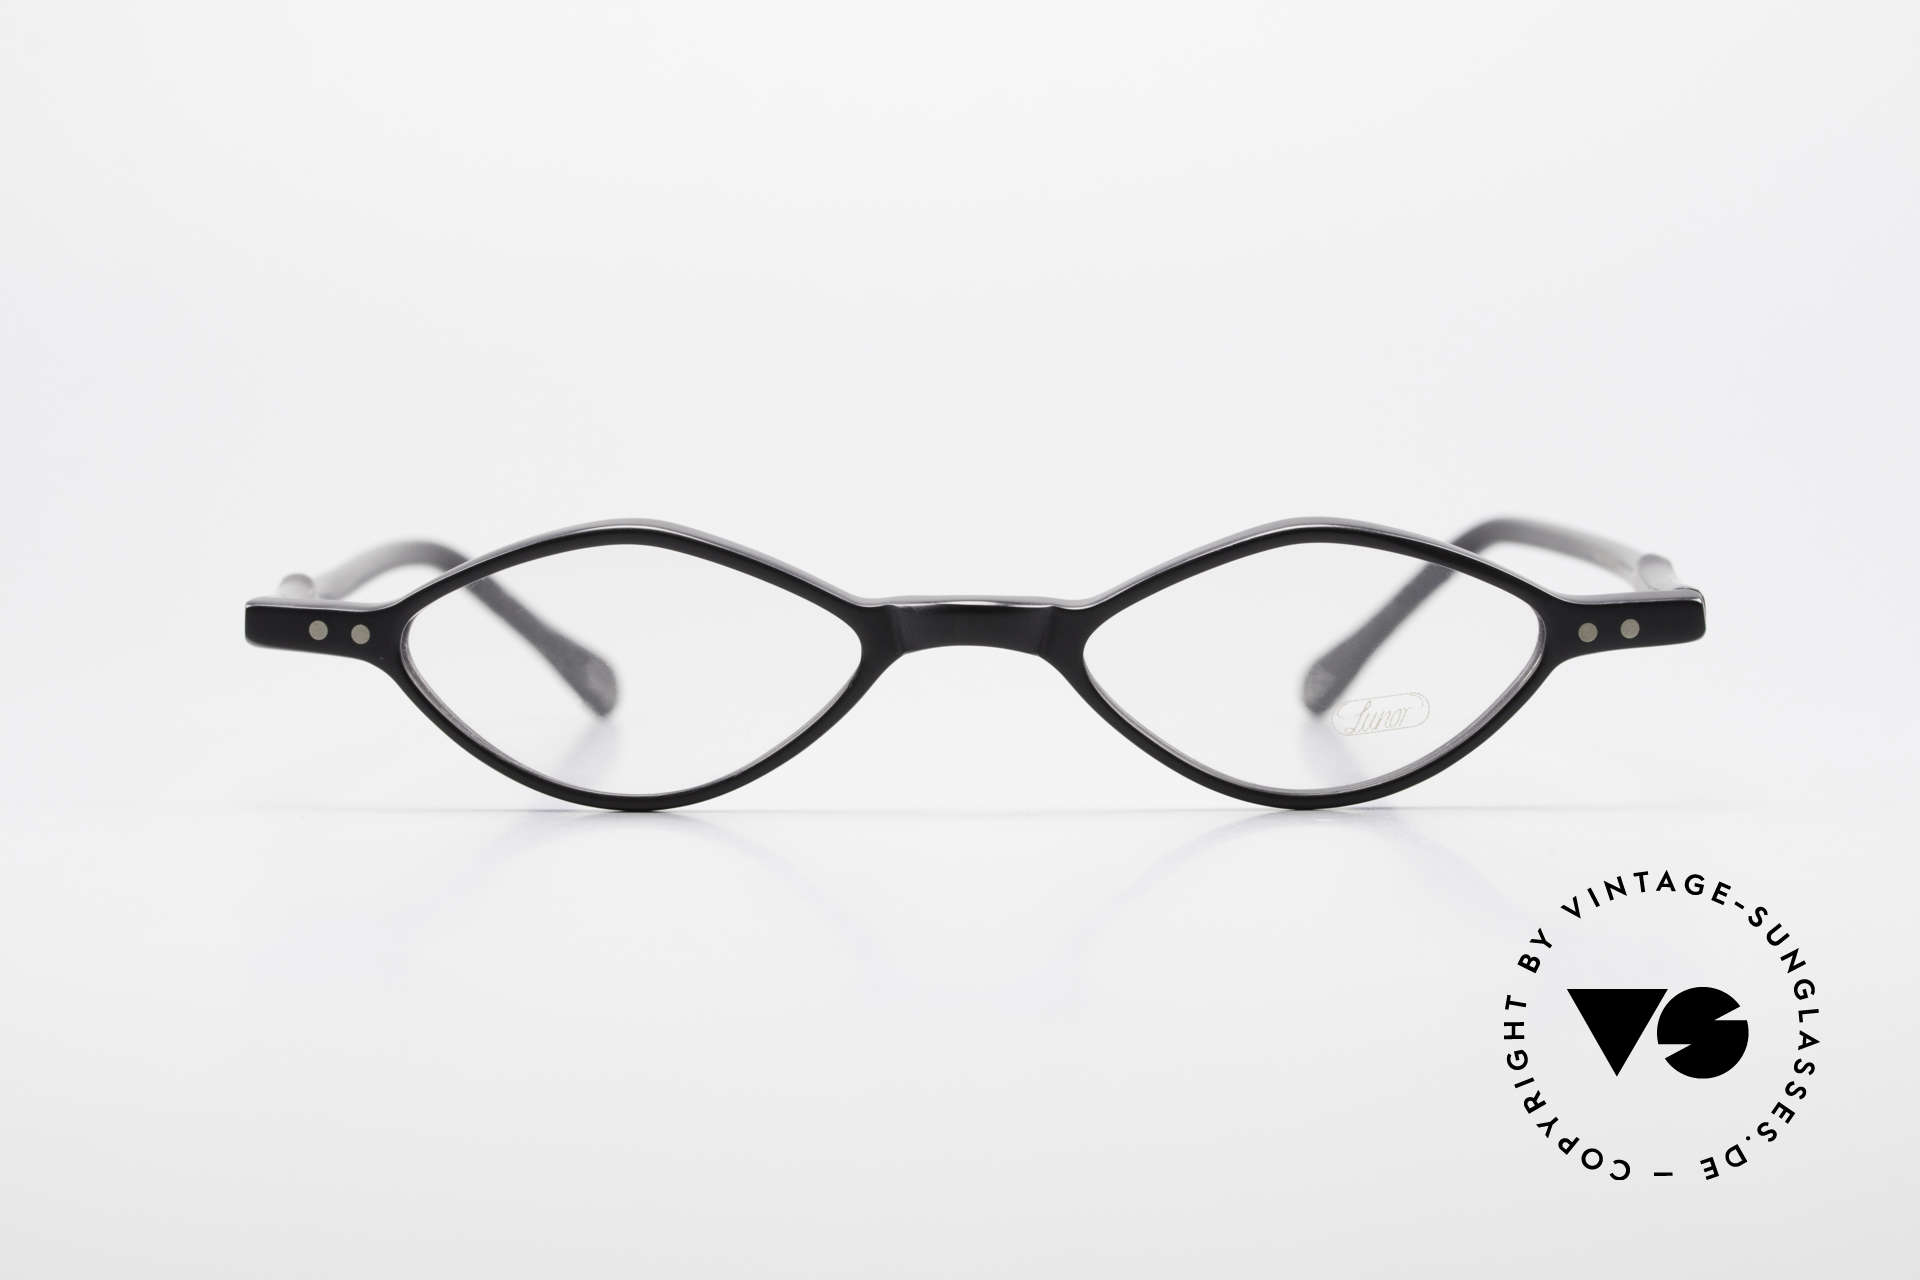 Lunor A44 Reading Glasses Acetate Frame, riveted hinges; cut precise to the tenth of a millimeter, Made for Men and Women